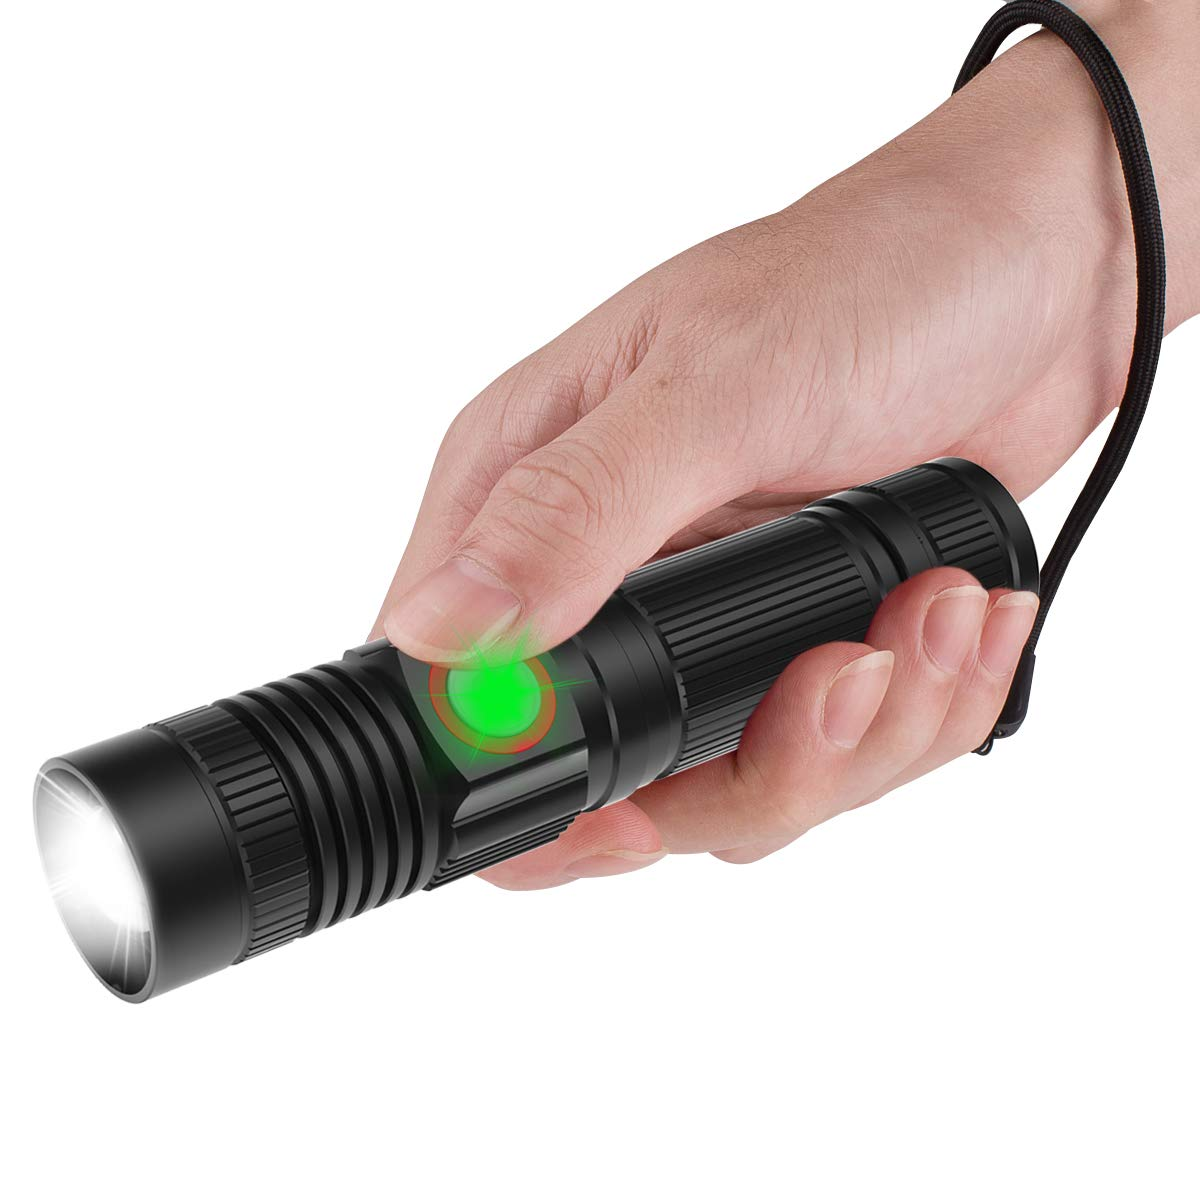 Not my favorite flashlight.